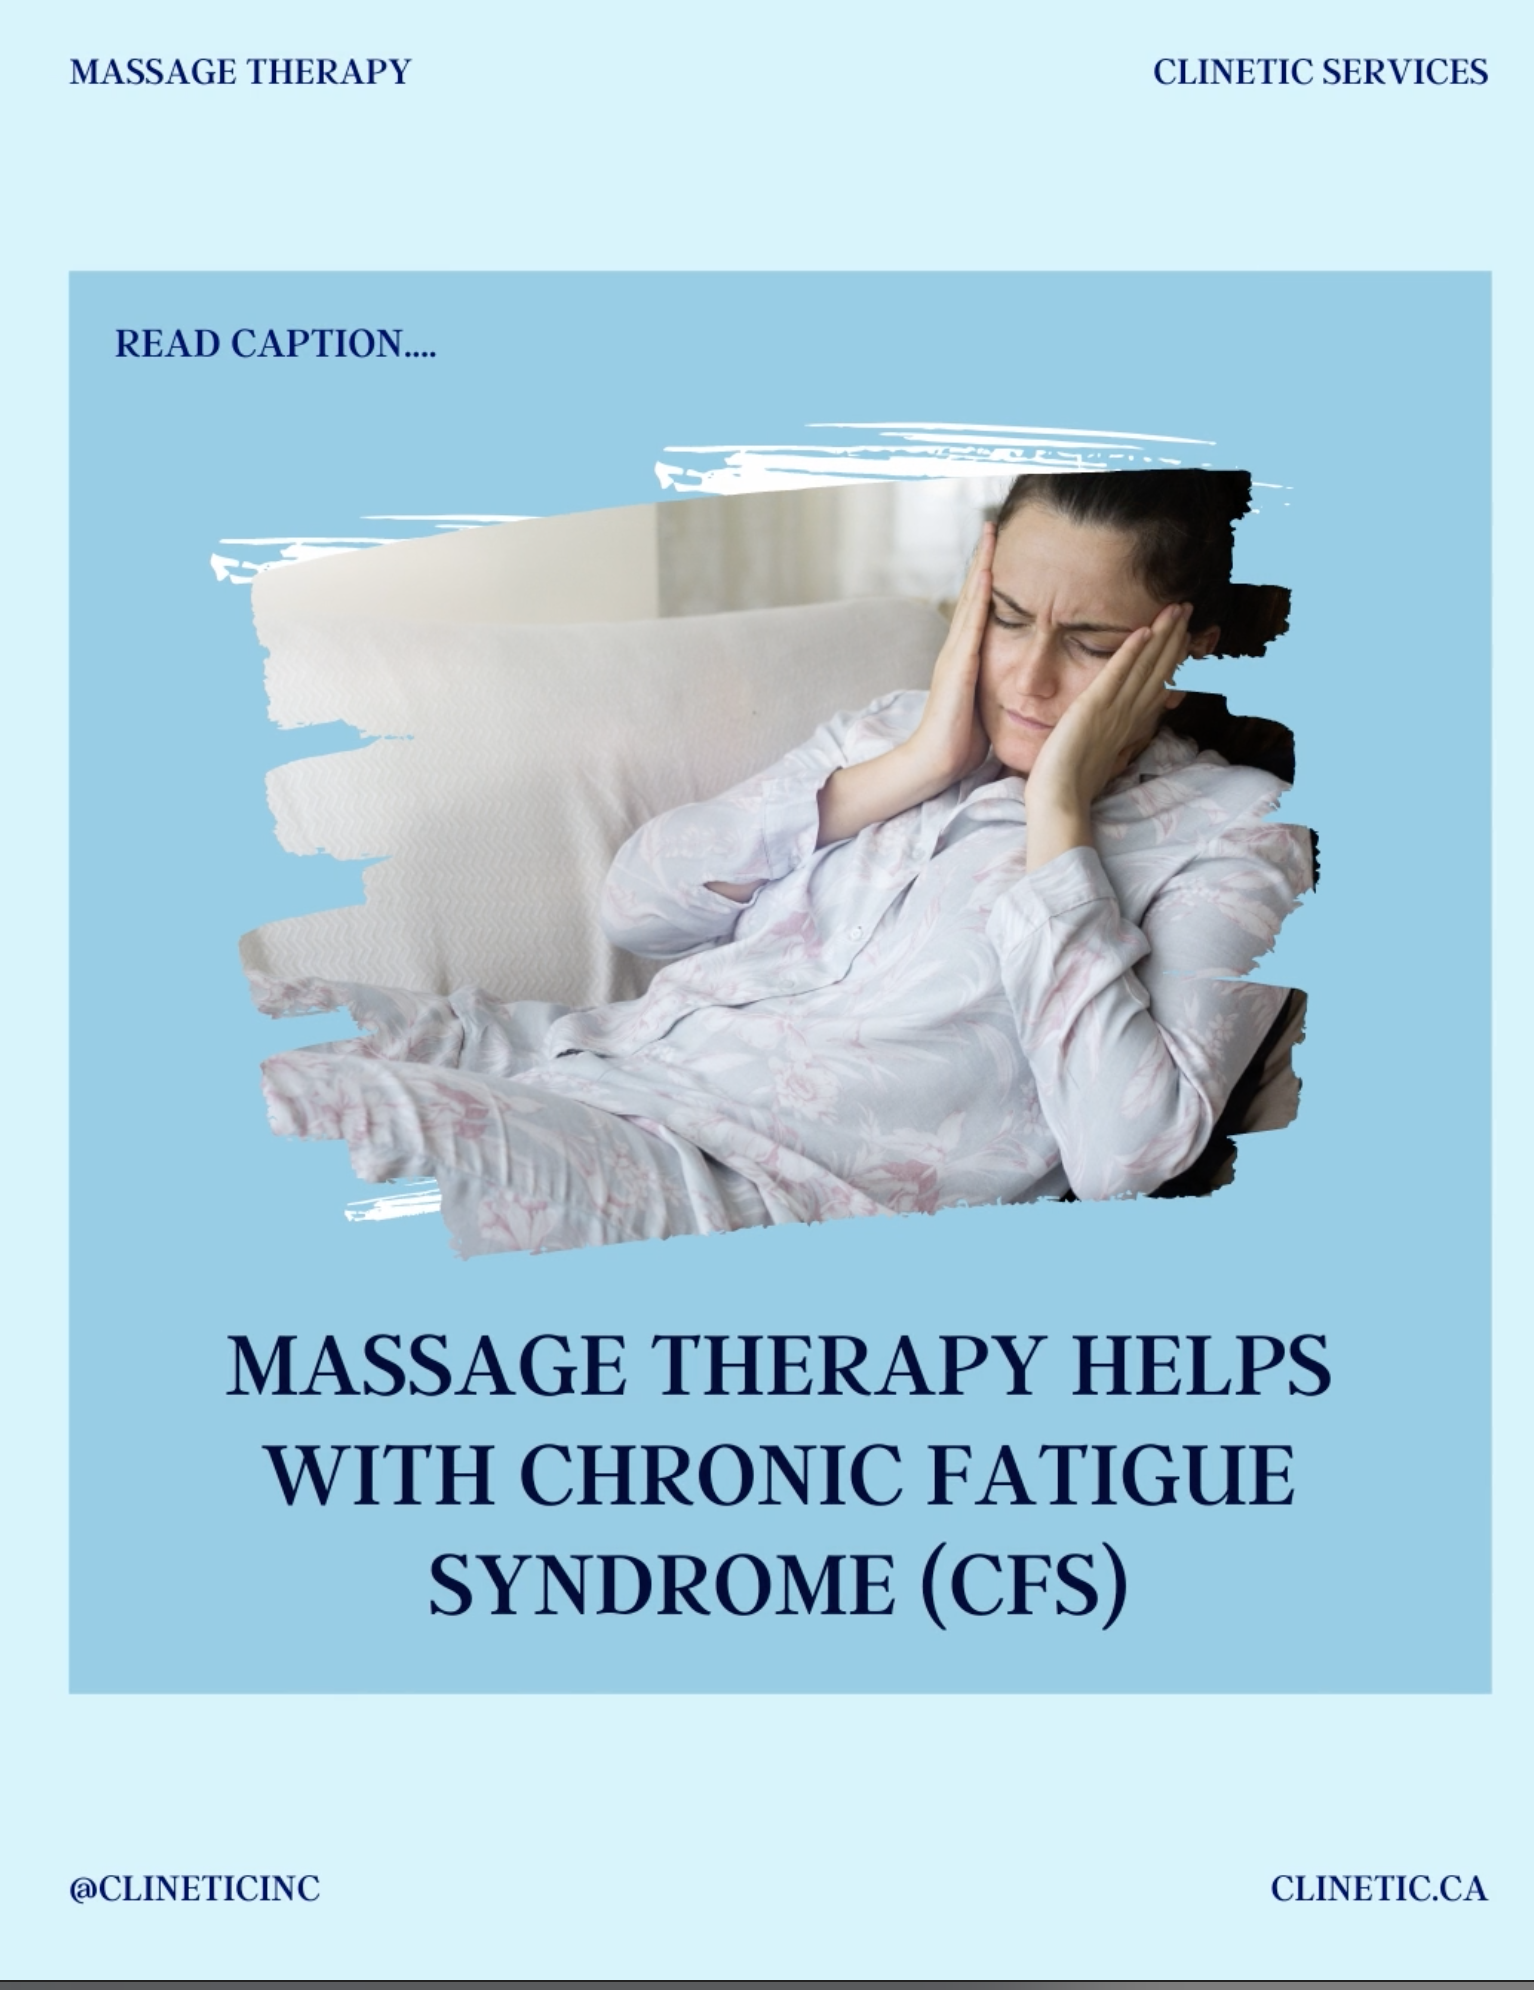 Massage Therapy helps with chronic fatigue syndrome (CFS)